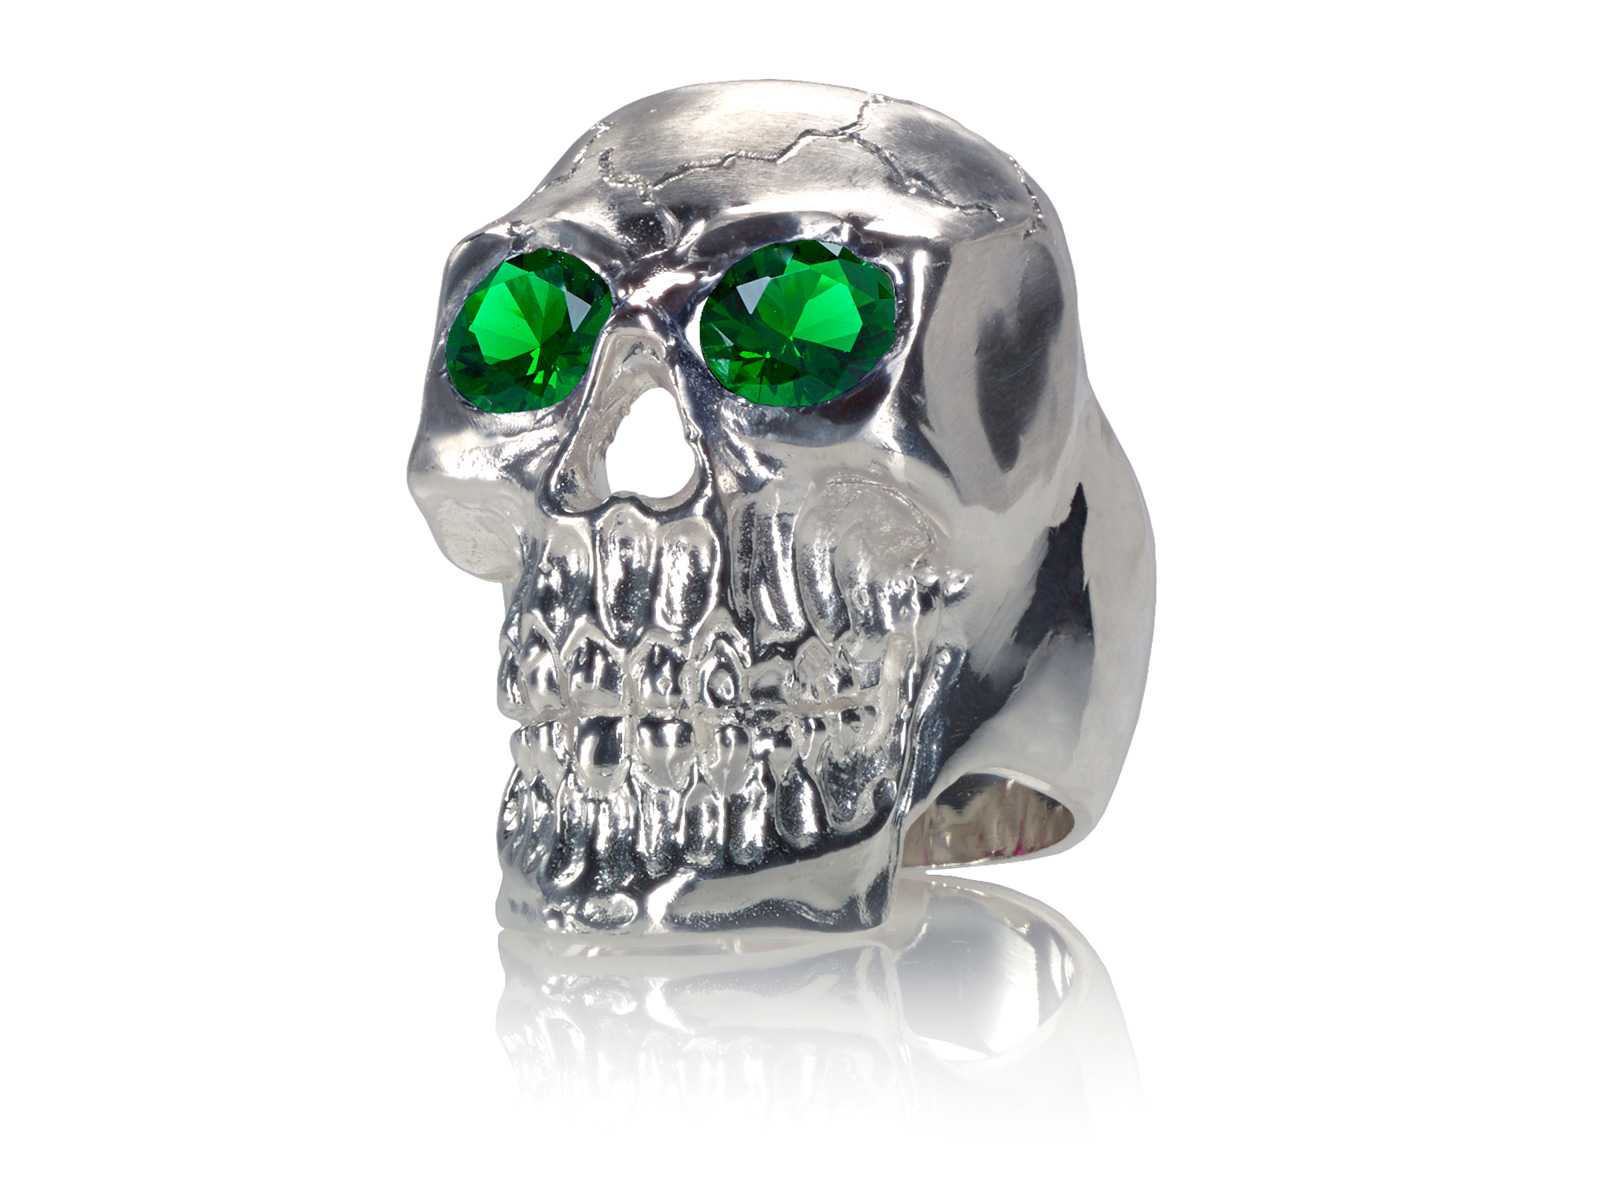 RG350C Barbarian Skull Ring Large Sterling Silver with Green Stones, designed by Steve Soffa